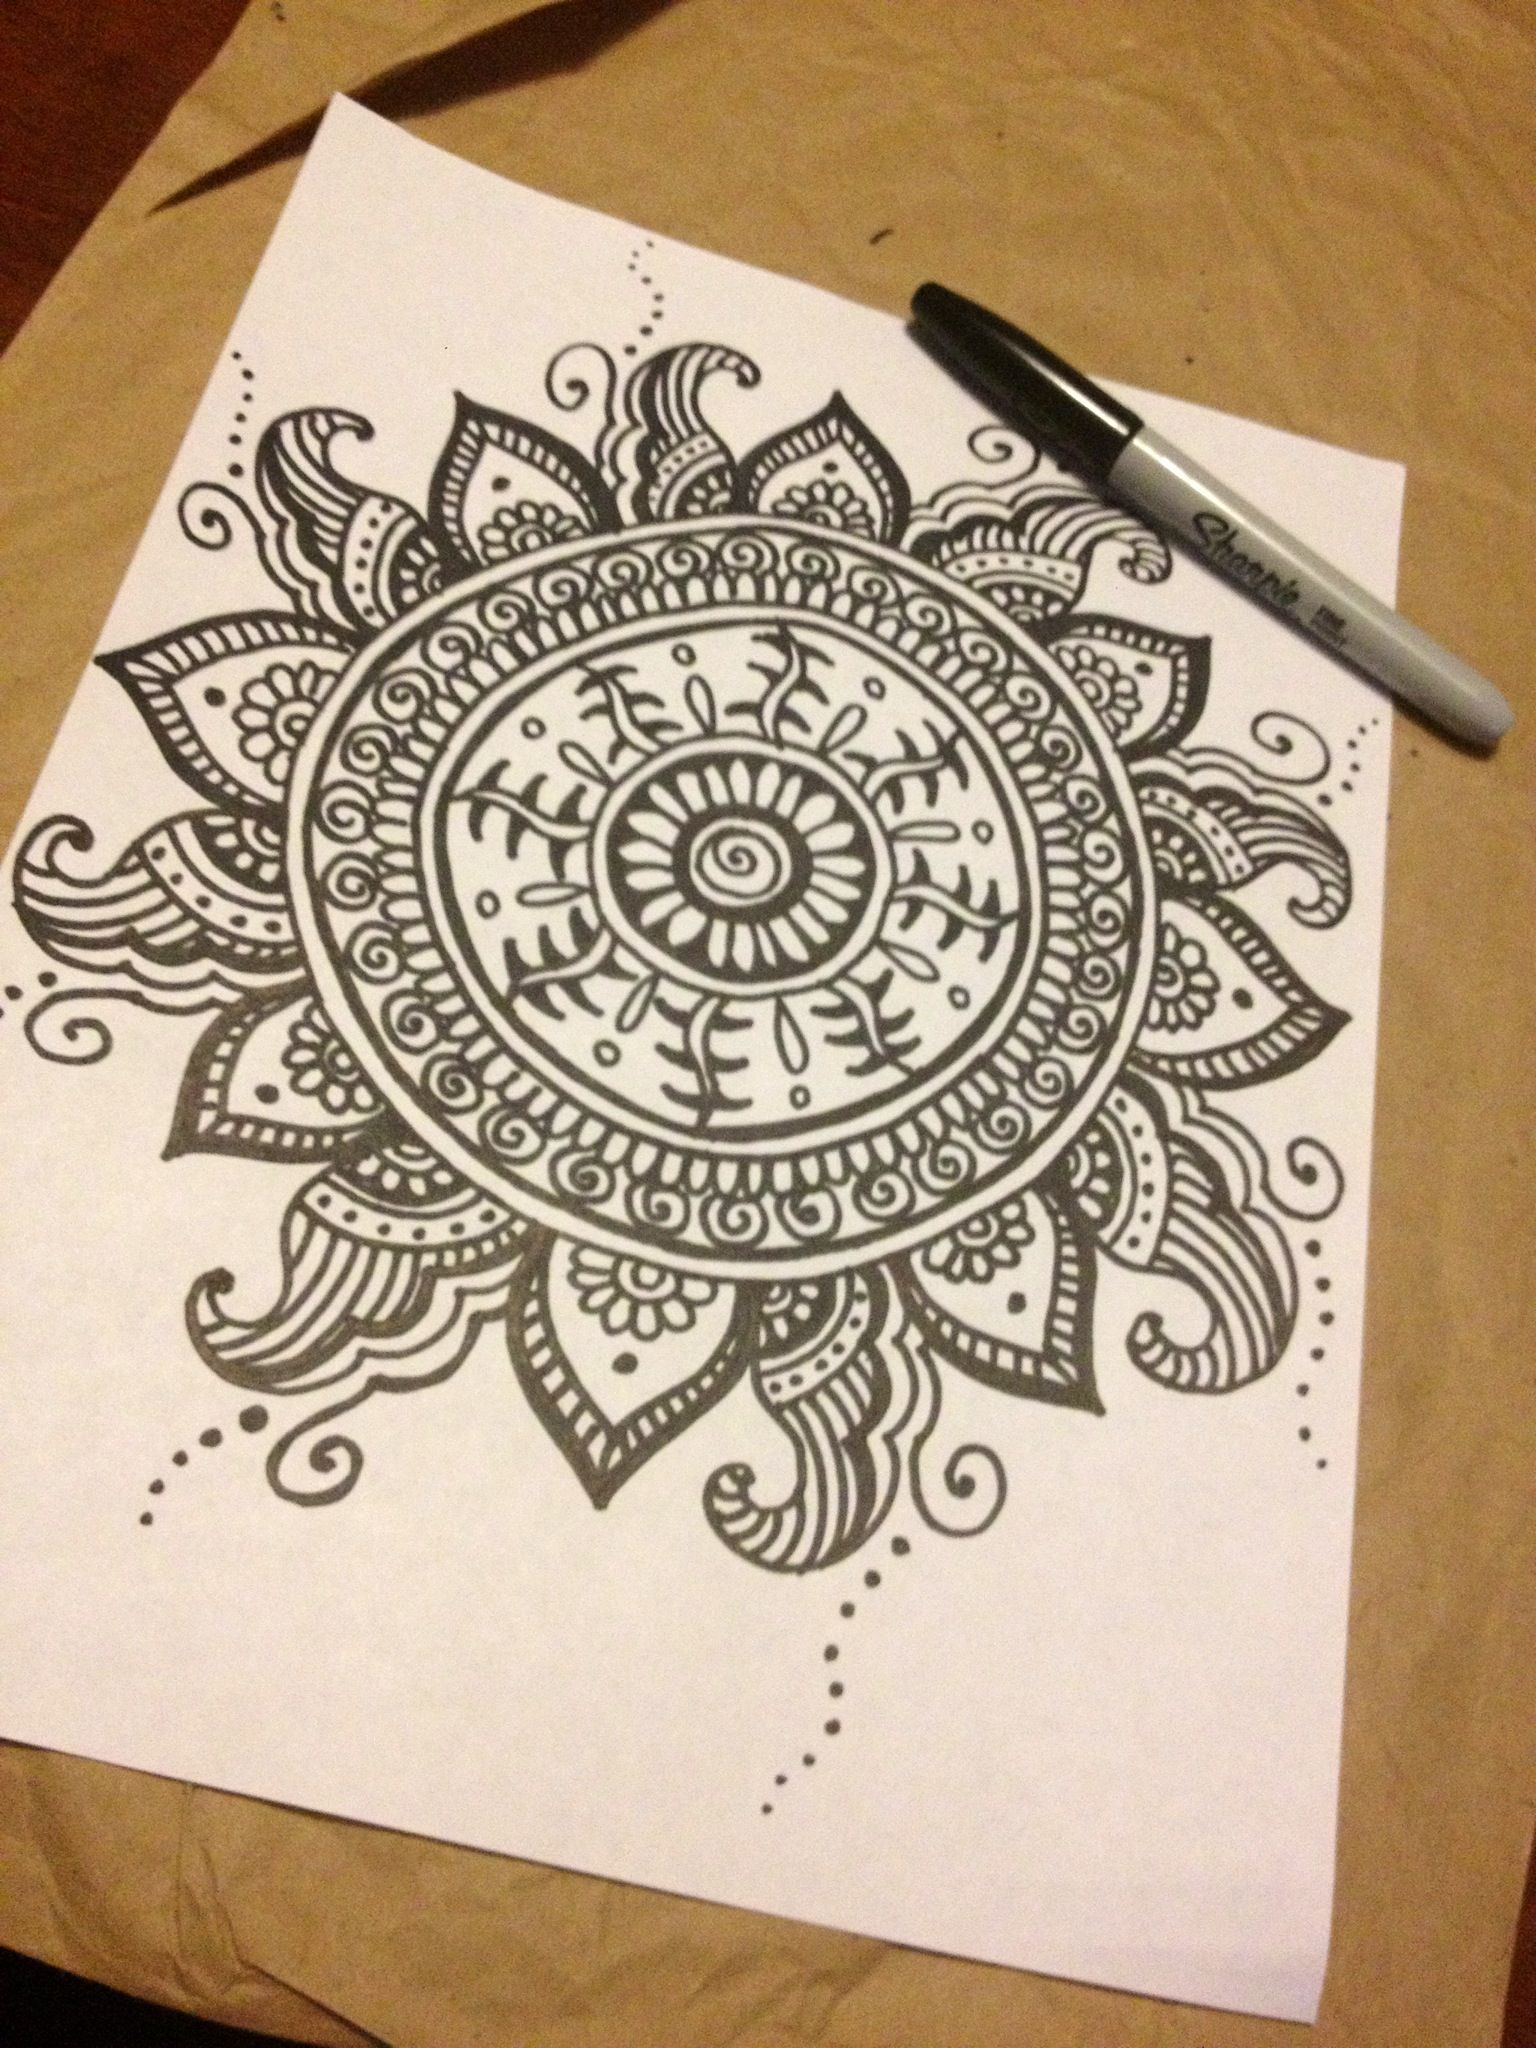 Making A Mandala Meditation Coloring Book This Is One Of The Designs